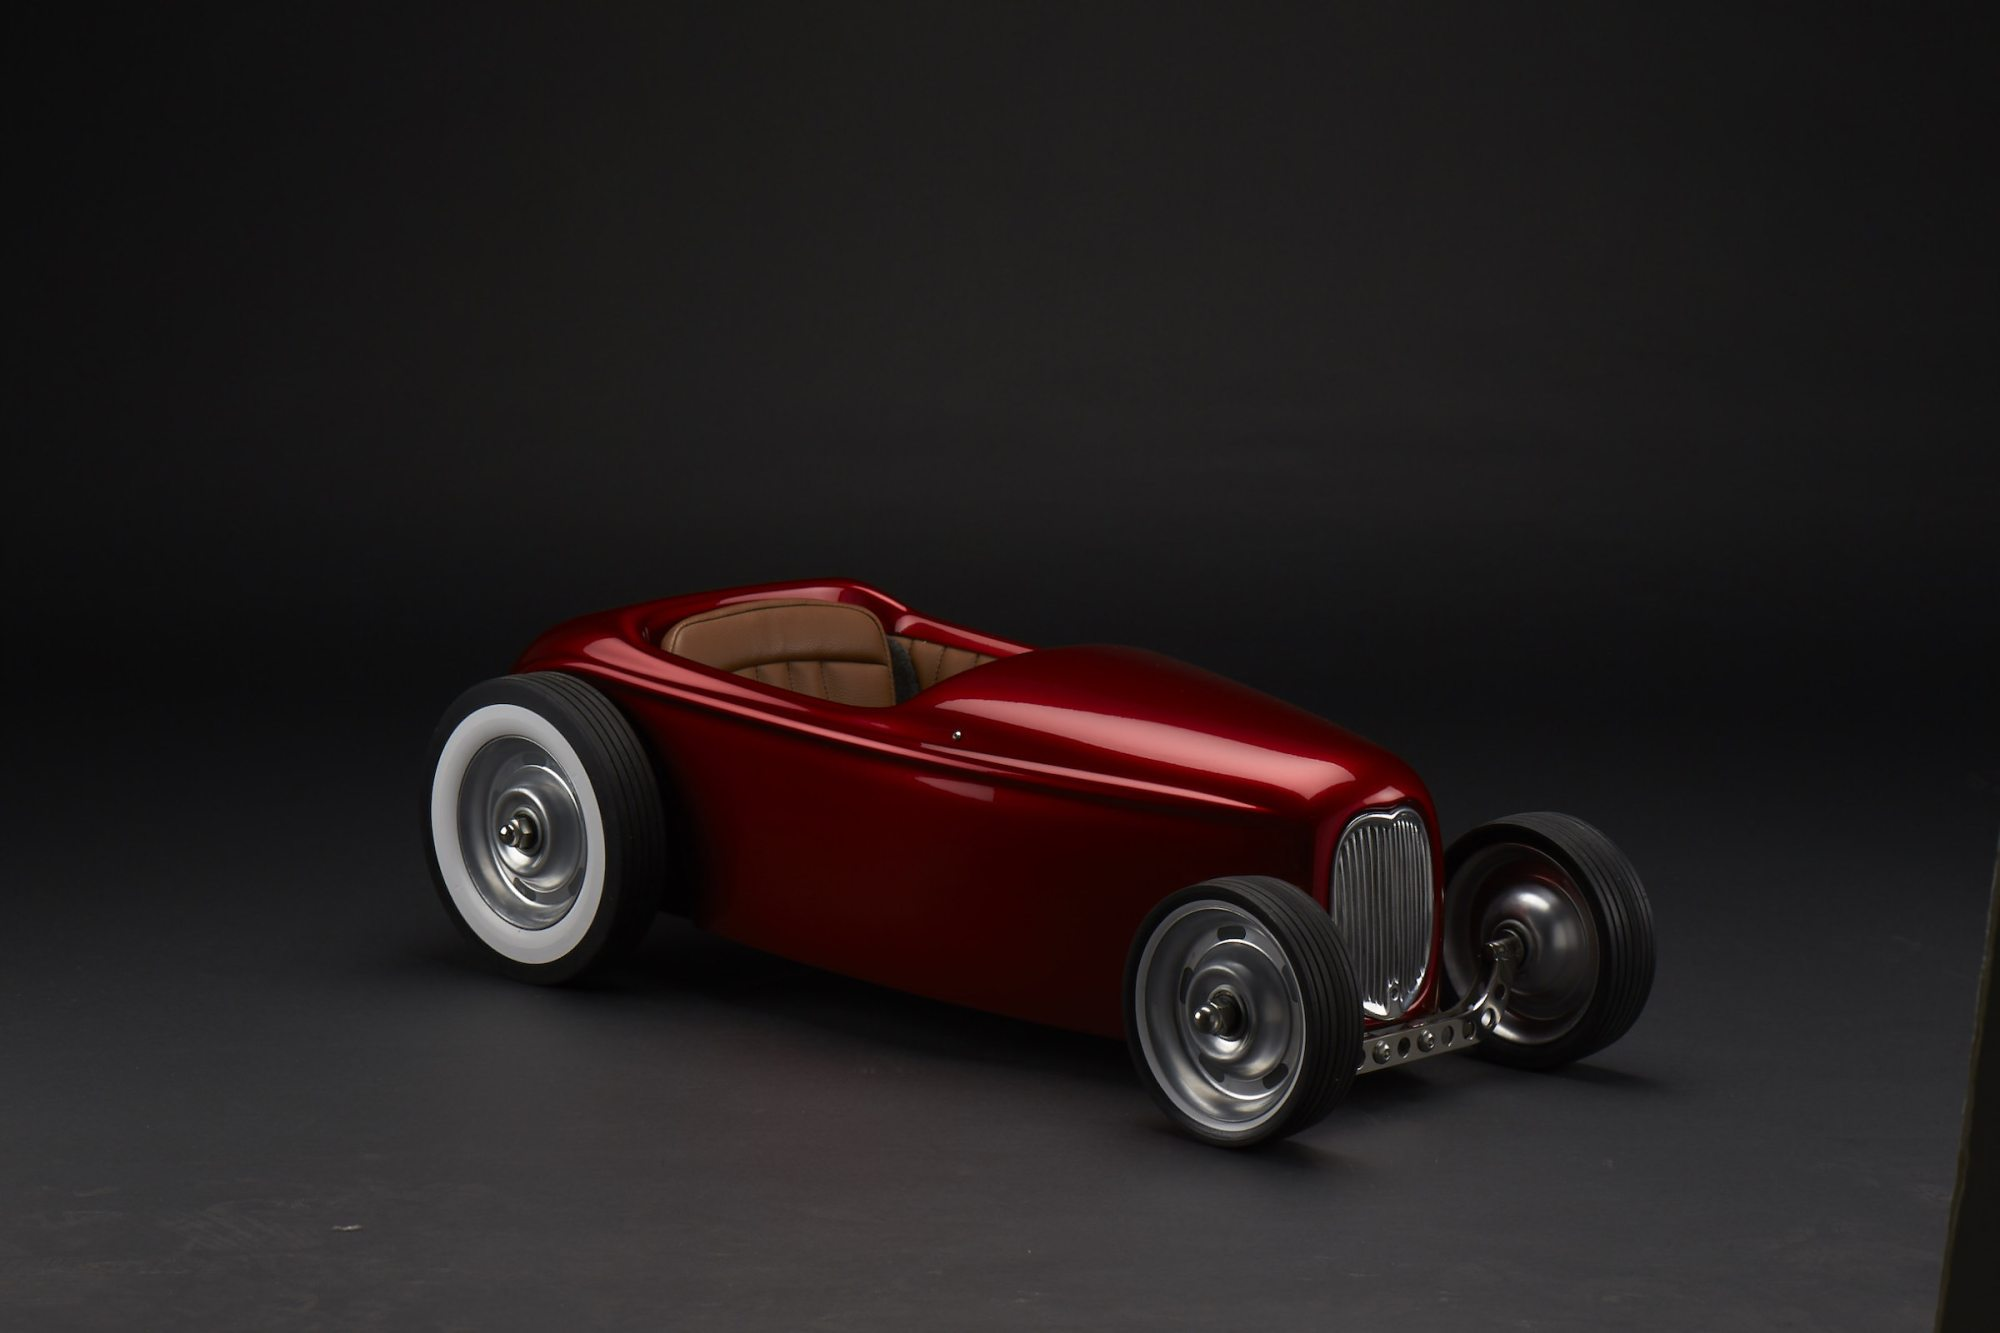 hight resolution of the chassis features a hot rod theme and has bent tube and creates a seamless mount system for the body